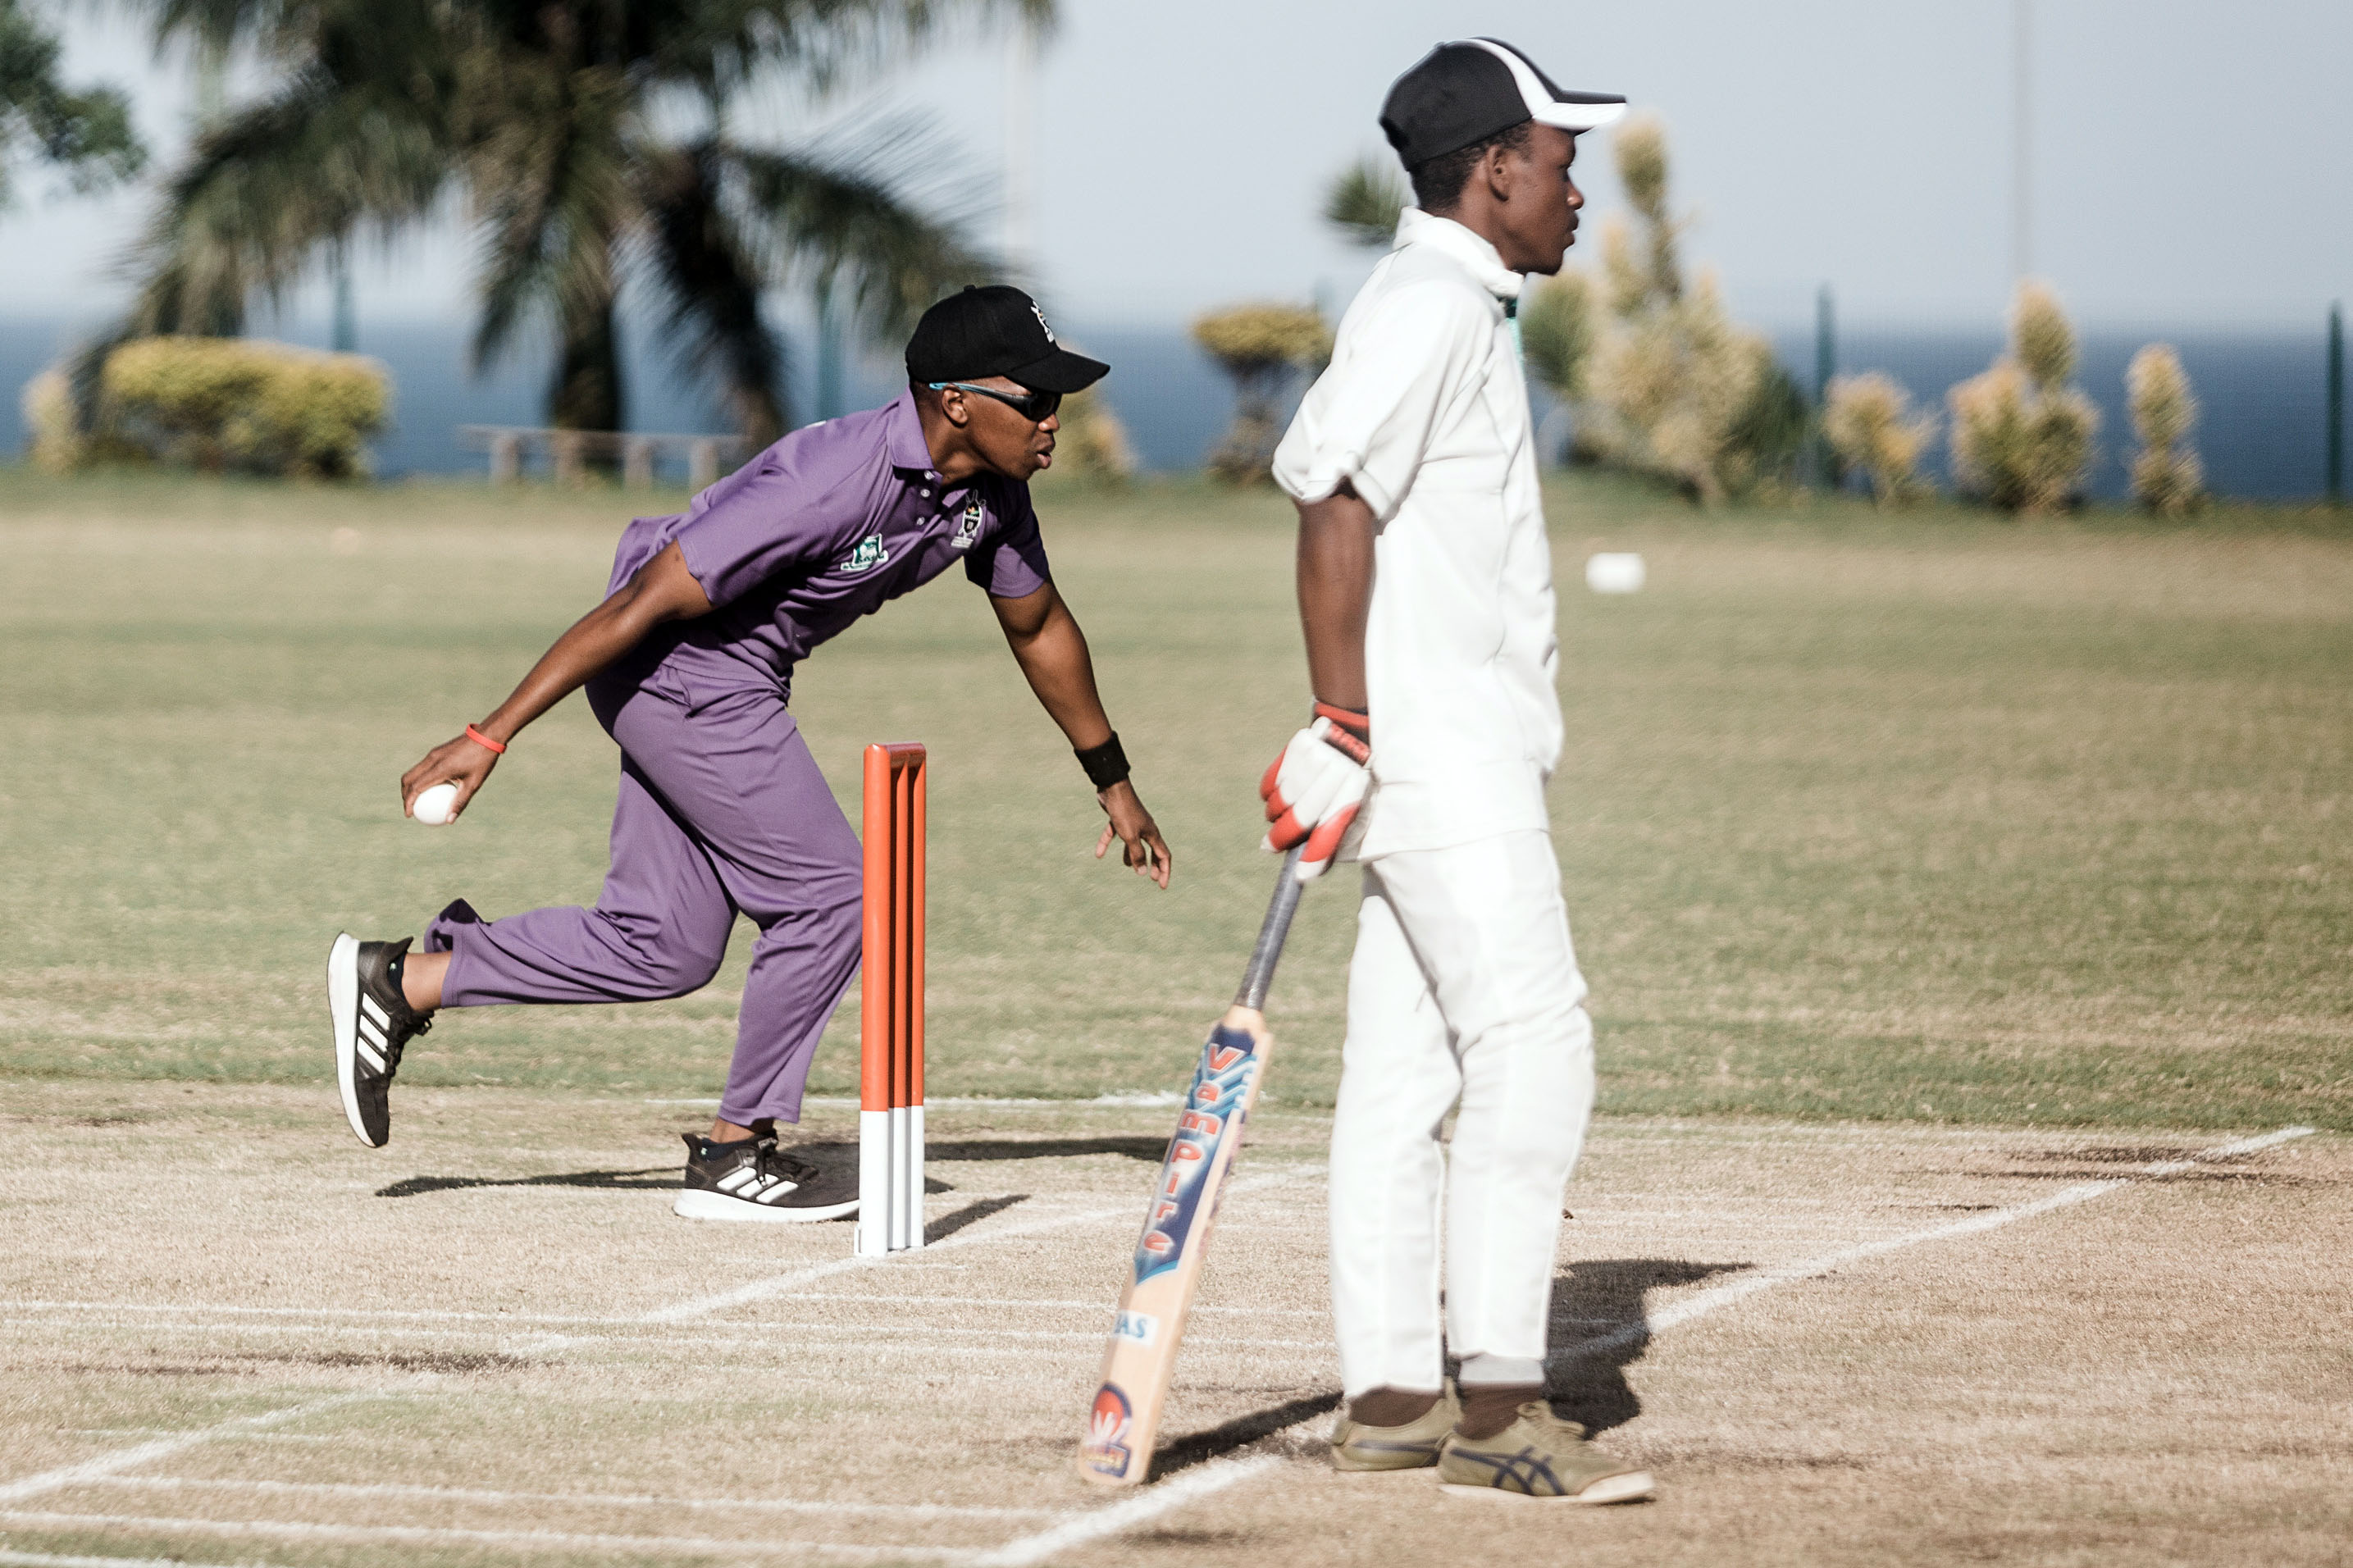 25 September 2019: Kwazulu-Natal vice captain Ndu Mkhize bowls during the 2019 Blind National Cricket Tournament at Northwood Boys High in Durban. Partially sighted and blind players use a softer, plastic ball that rattles.